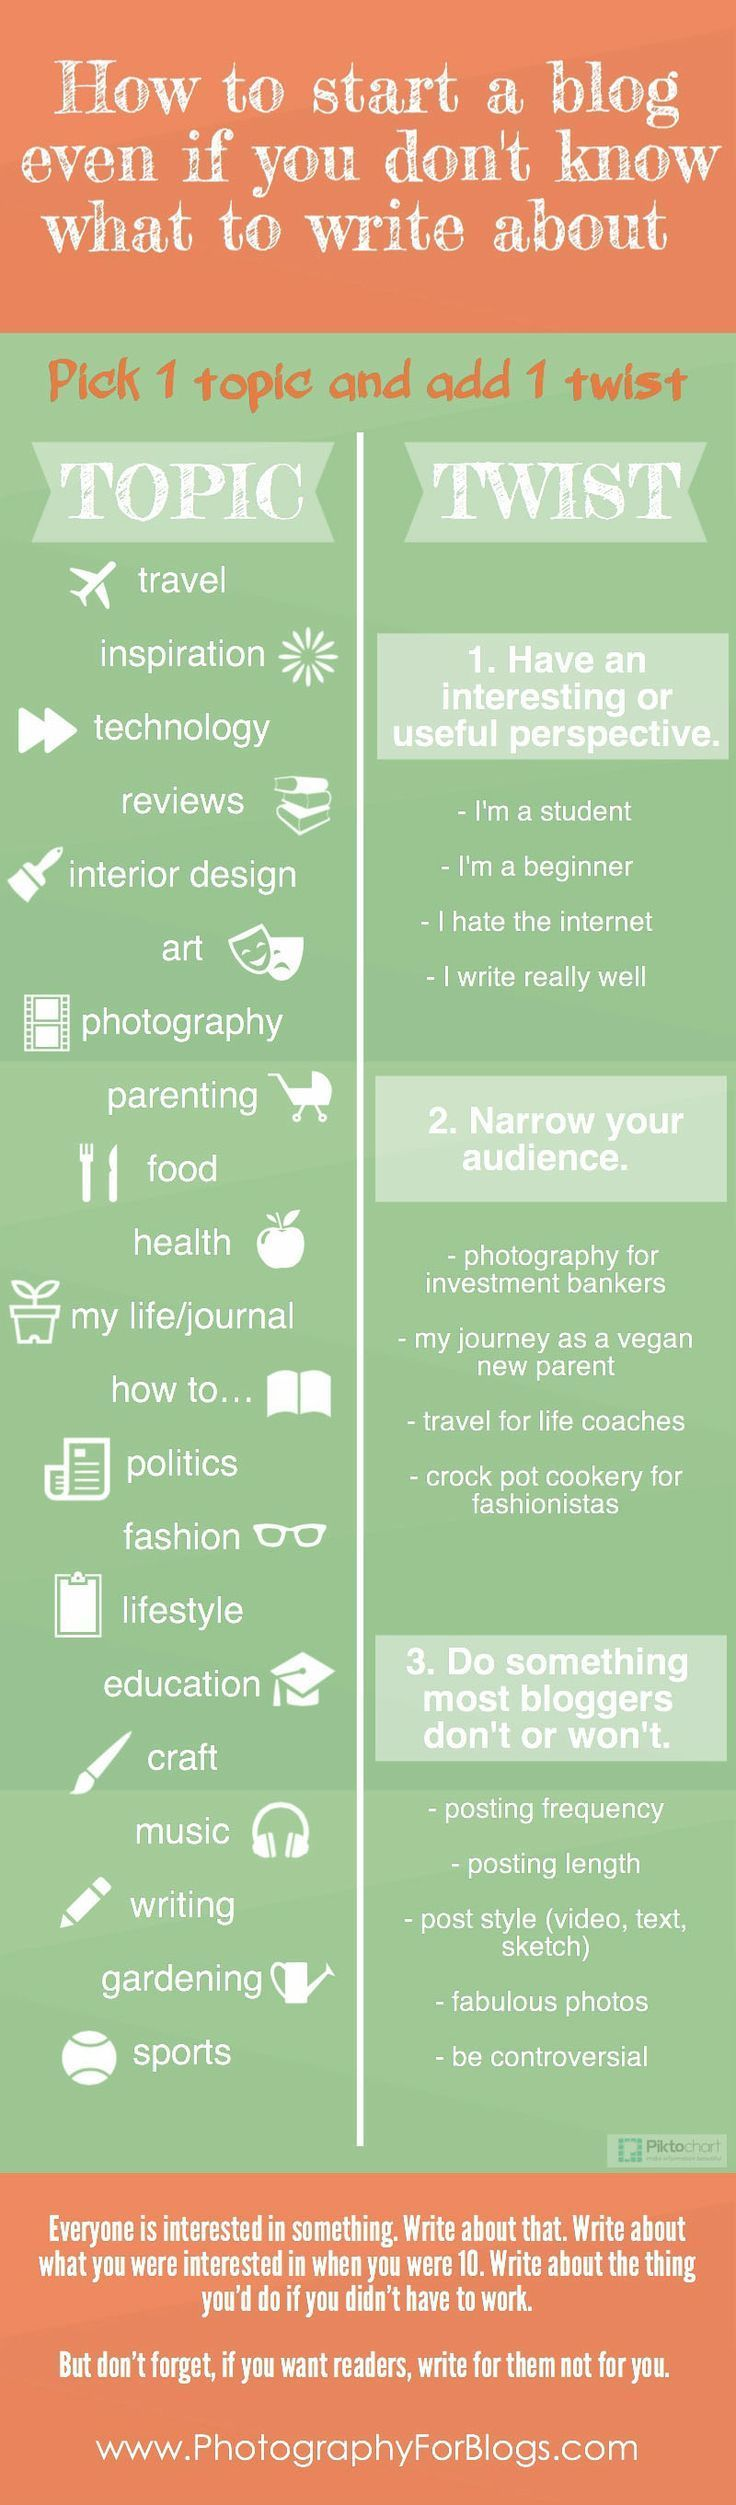 best blog post prompts ideas images content how to start a blog even if you don t know what to write about